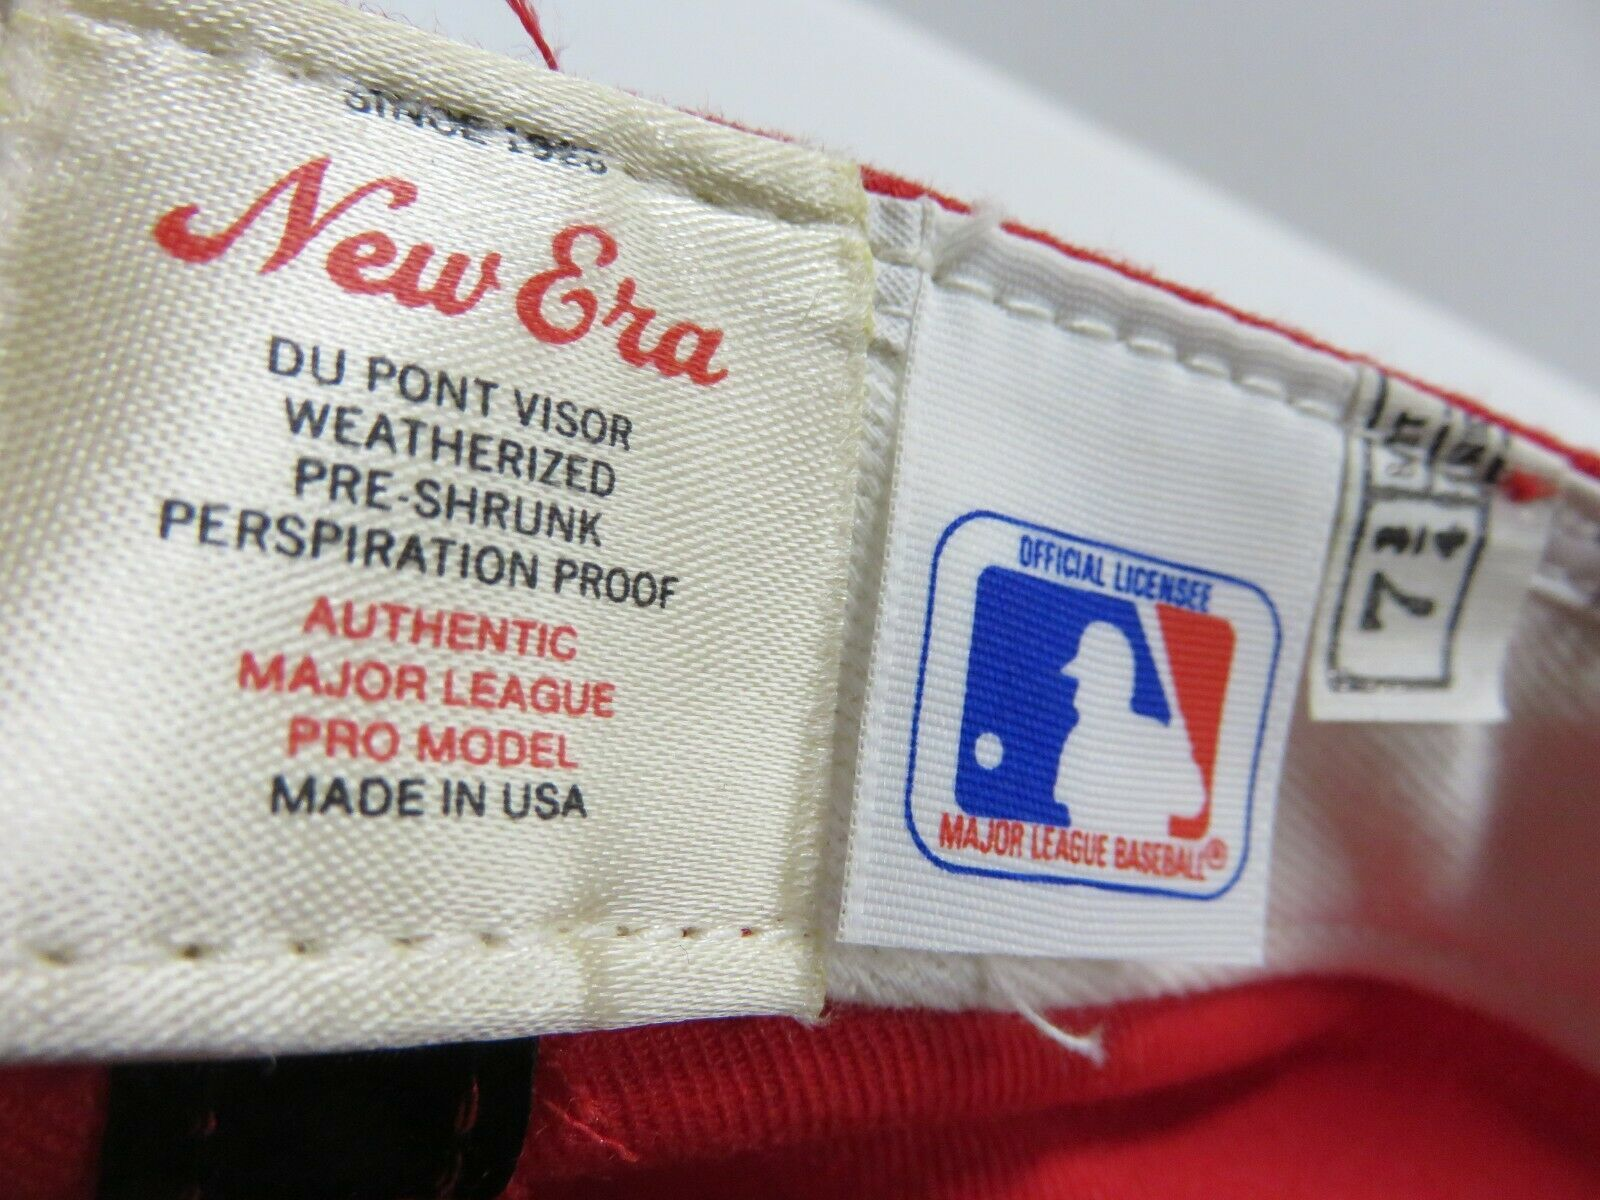 VTG New Era St.Louis Cardinals MLB Baseball Fitted Hat Adult Size 7 3/4 USA Made image 5